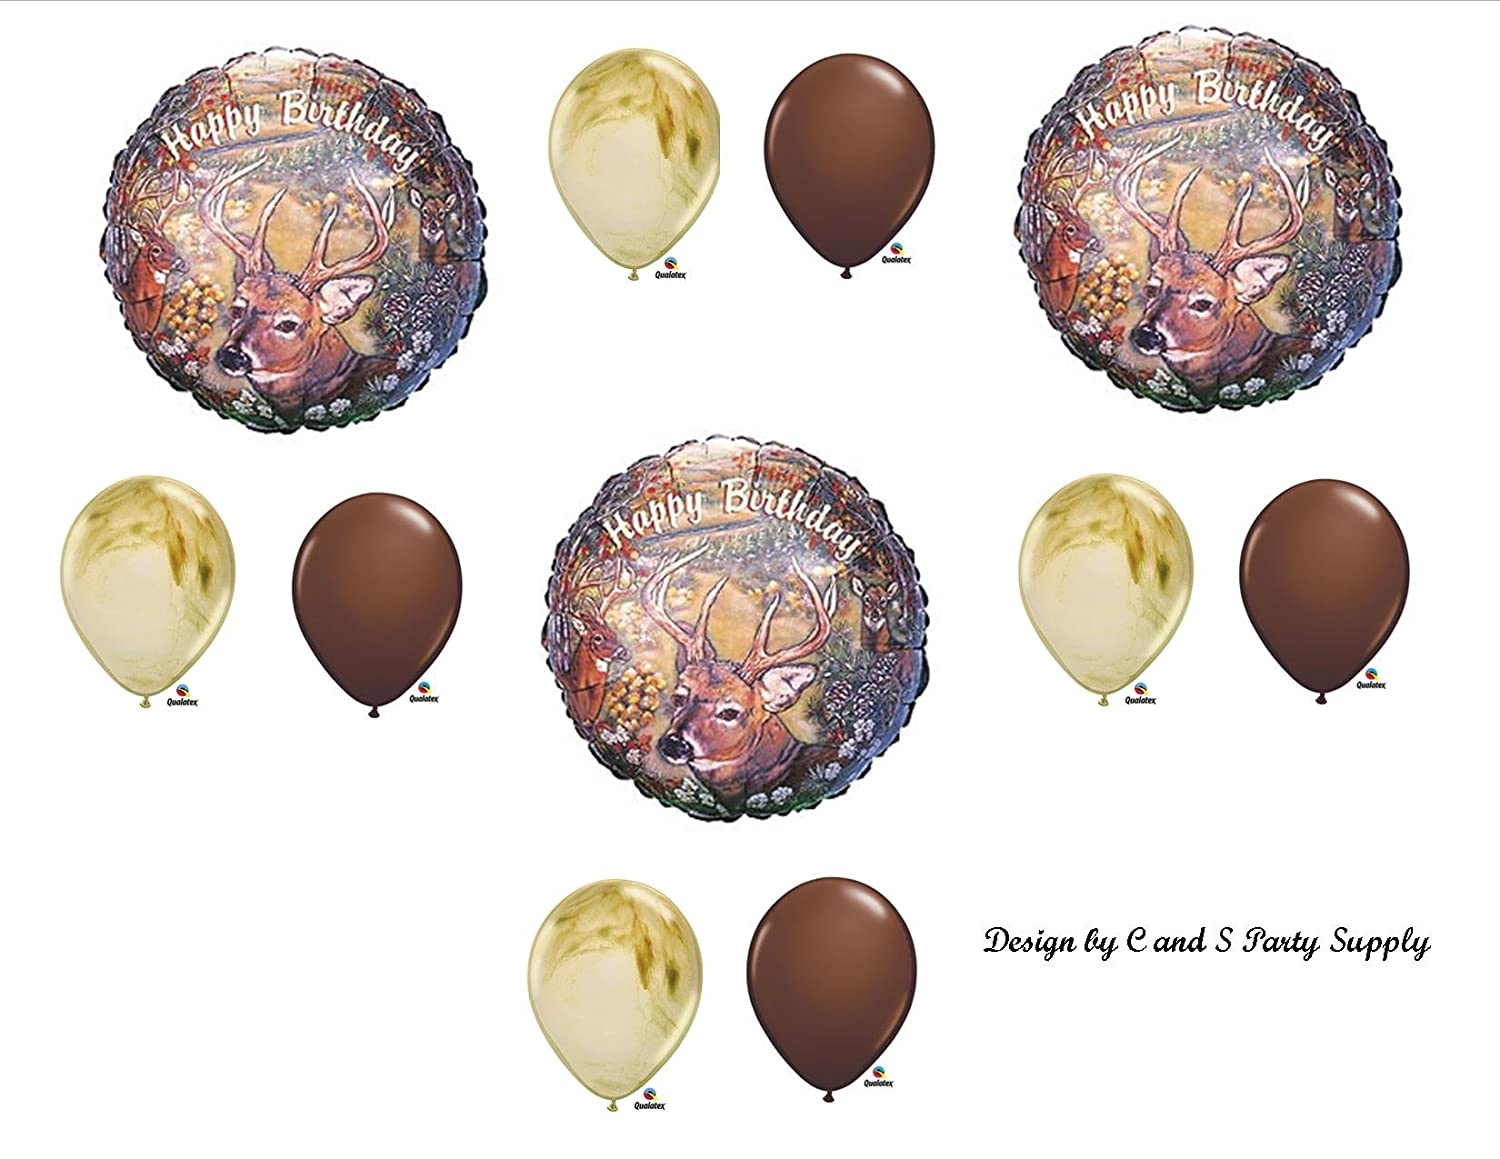 Amazon.com: Deer hunting Camouflage Birthday Party Balloons Favors on antique rustic kitchen ideas, royal blue kitchen ideas, beige kitchen ideas, wine kitchen ideas, olive kitchen ideas, mint kitchen ideas, two toned kitchen ideas, bronze kitchen ideas, color kitchen ideas, camo kitchen cabinets, hunting kitchen ideas, chocolate kitchen ideas, plaid kitchen ideas, hunter kitchen ideas, pewter kitchen ideas, italy kitchen ideas, burgundy kitchen ideas, red kitchen ideas, rust kitchen ideas, shotgun kitchen ideas,